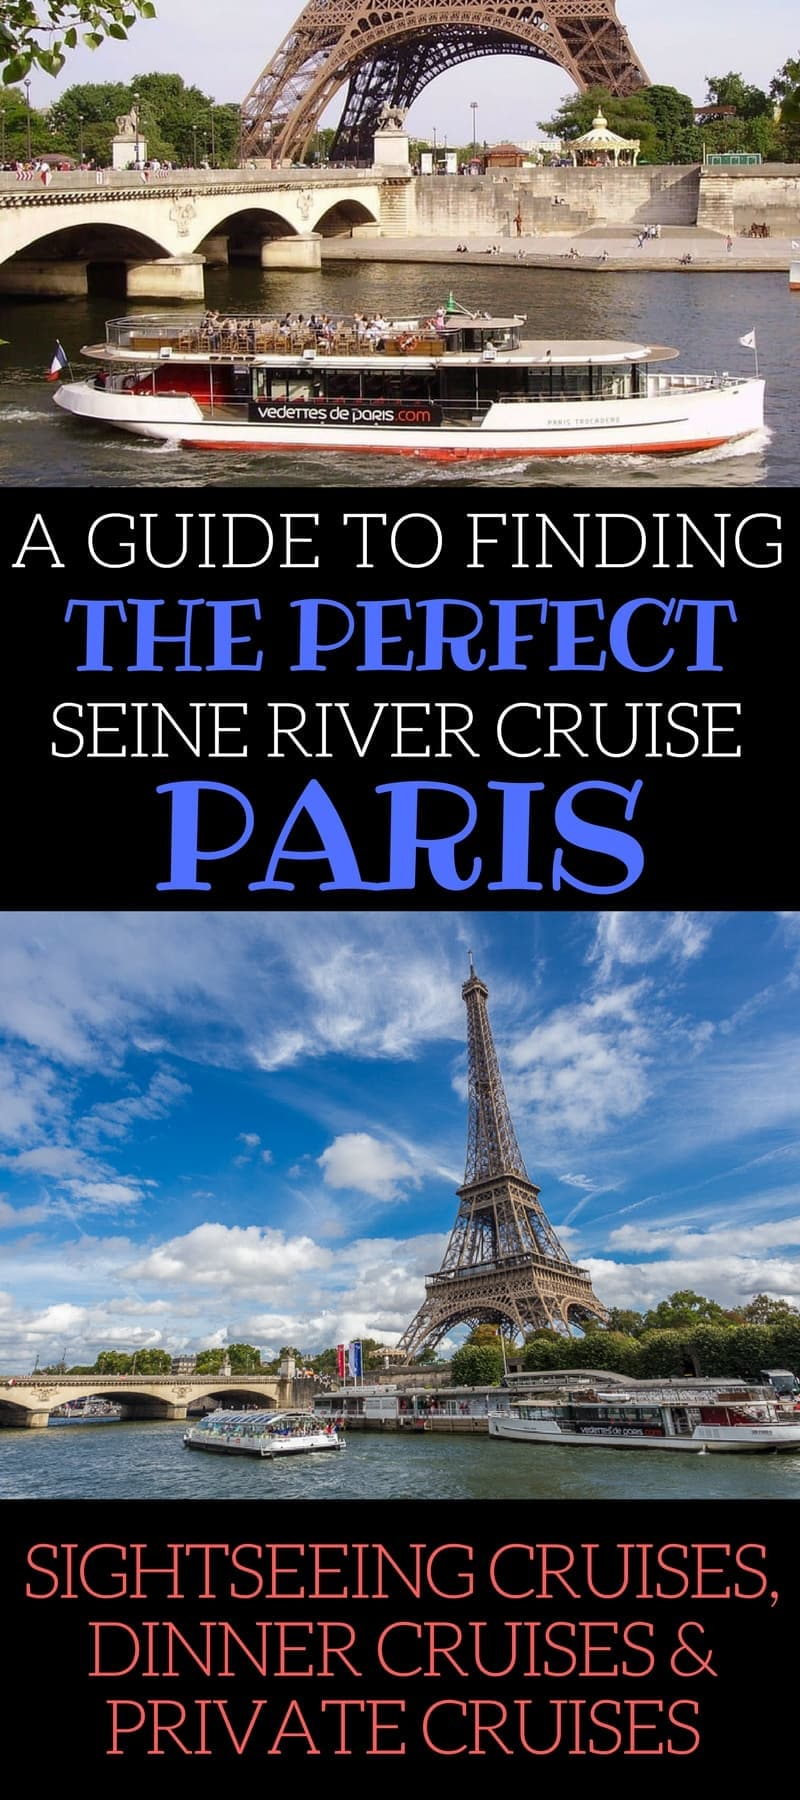 A guide to finding the best Seine river cruises in Paris. The guide reviews all the top cruise companies, listing cost, duration, narration type, departure points, and other information. We also provide information for those wanting to book a dinner cruise or private Seine cruise.